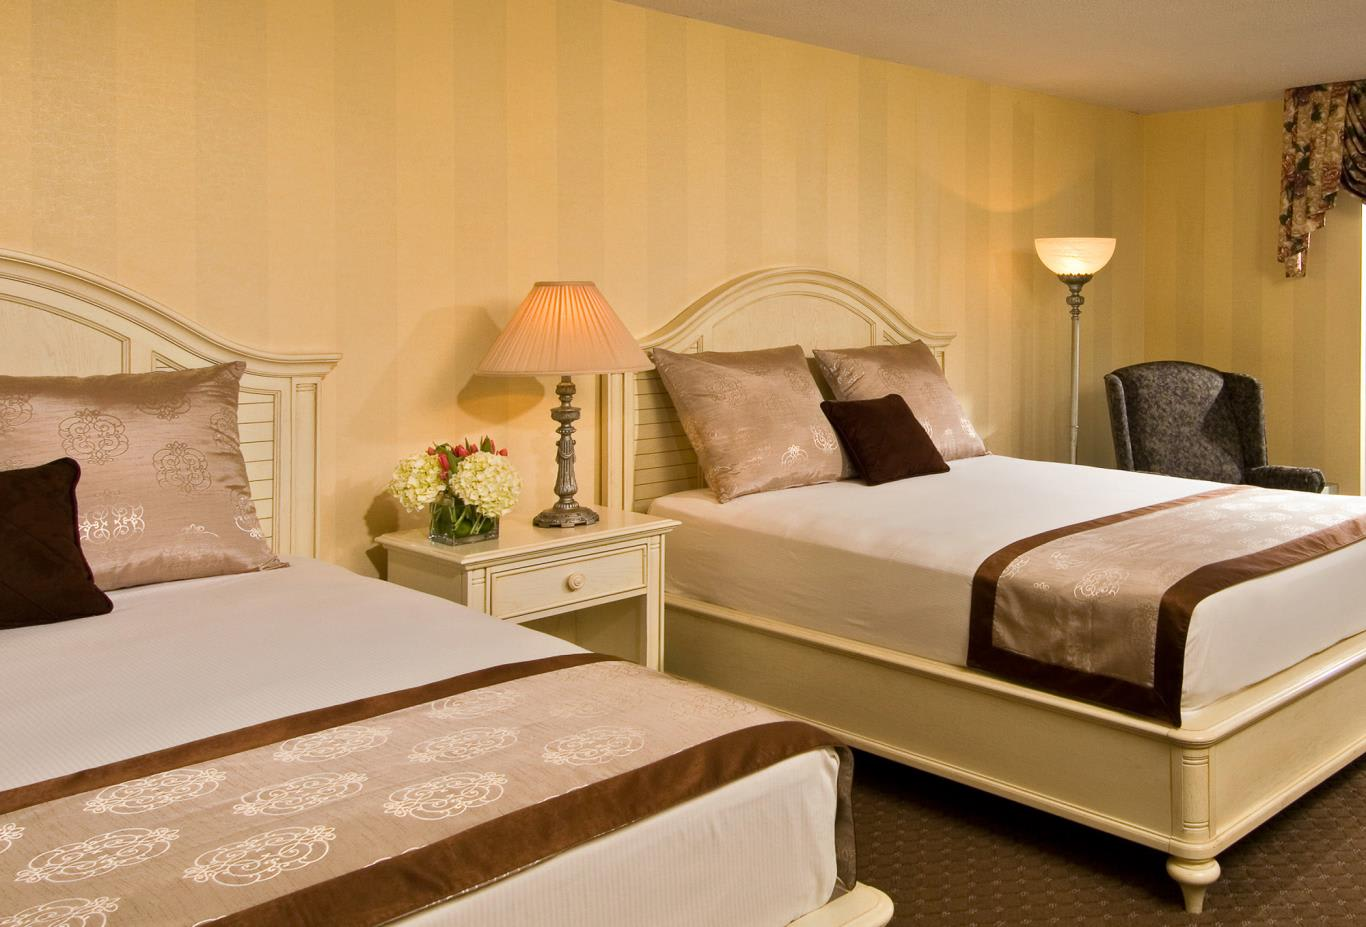 Deluxe Room with 2 queen size beds